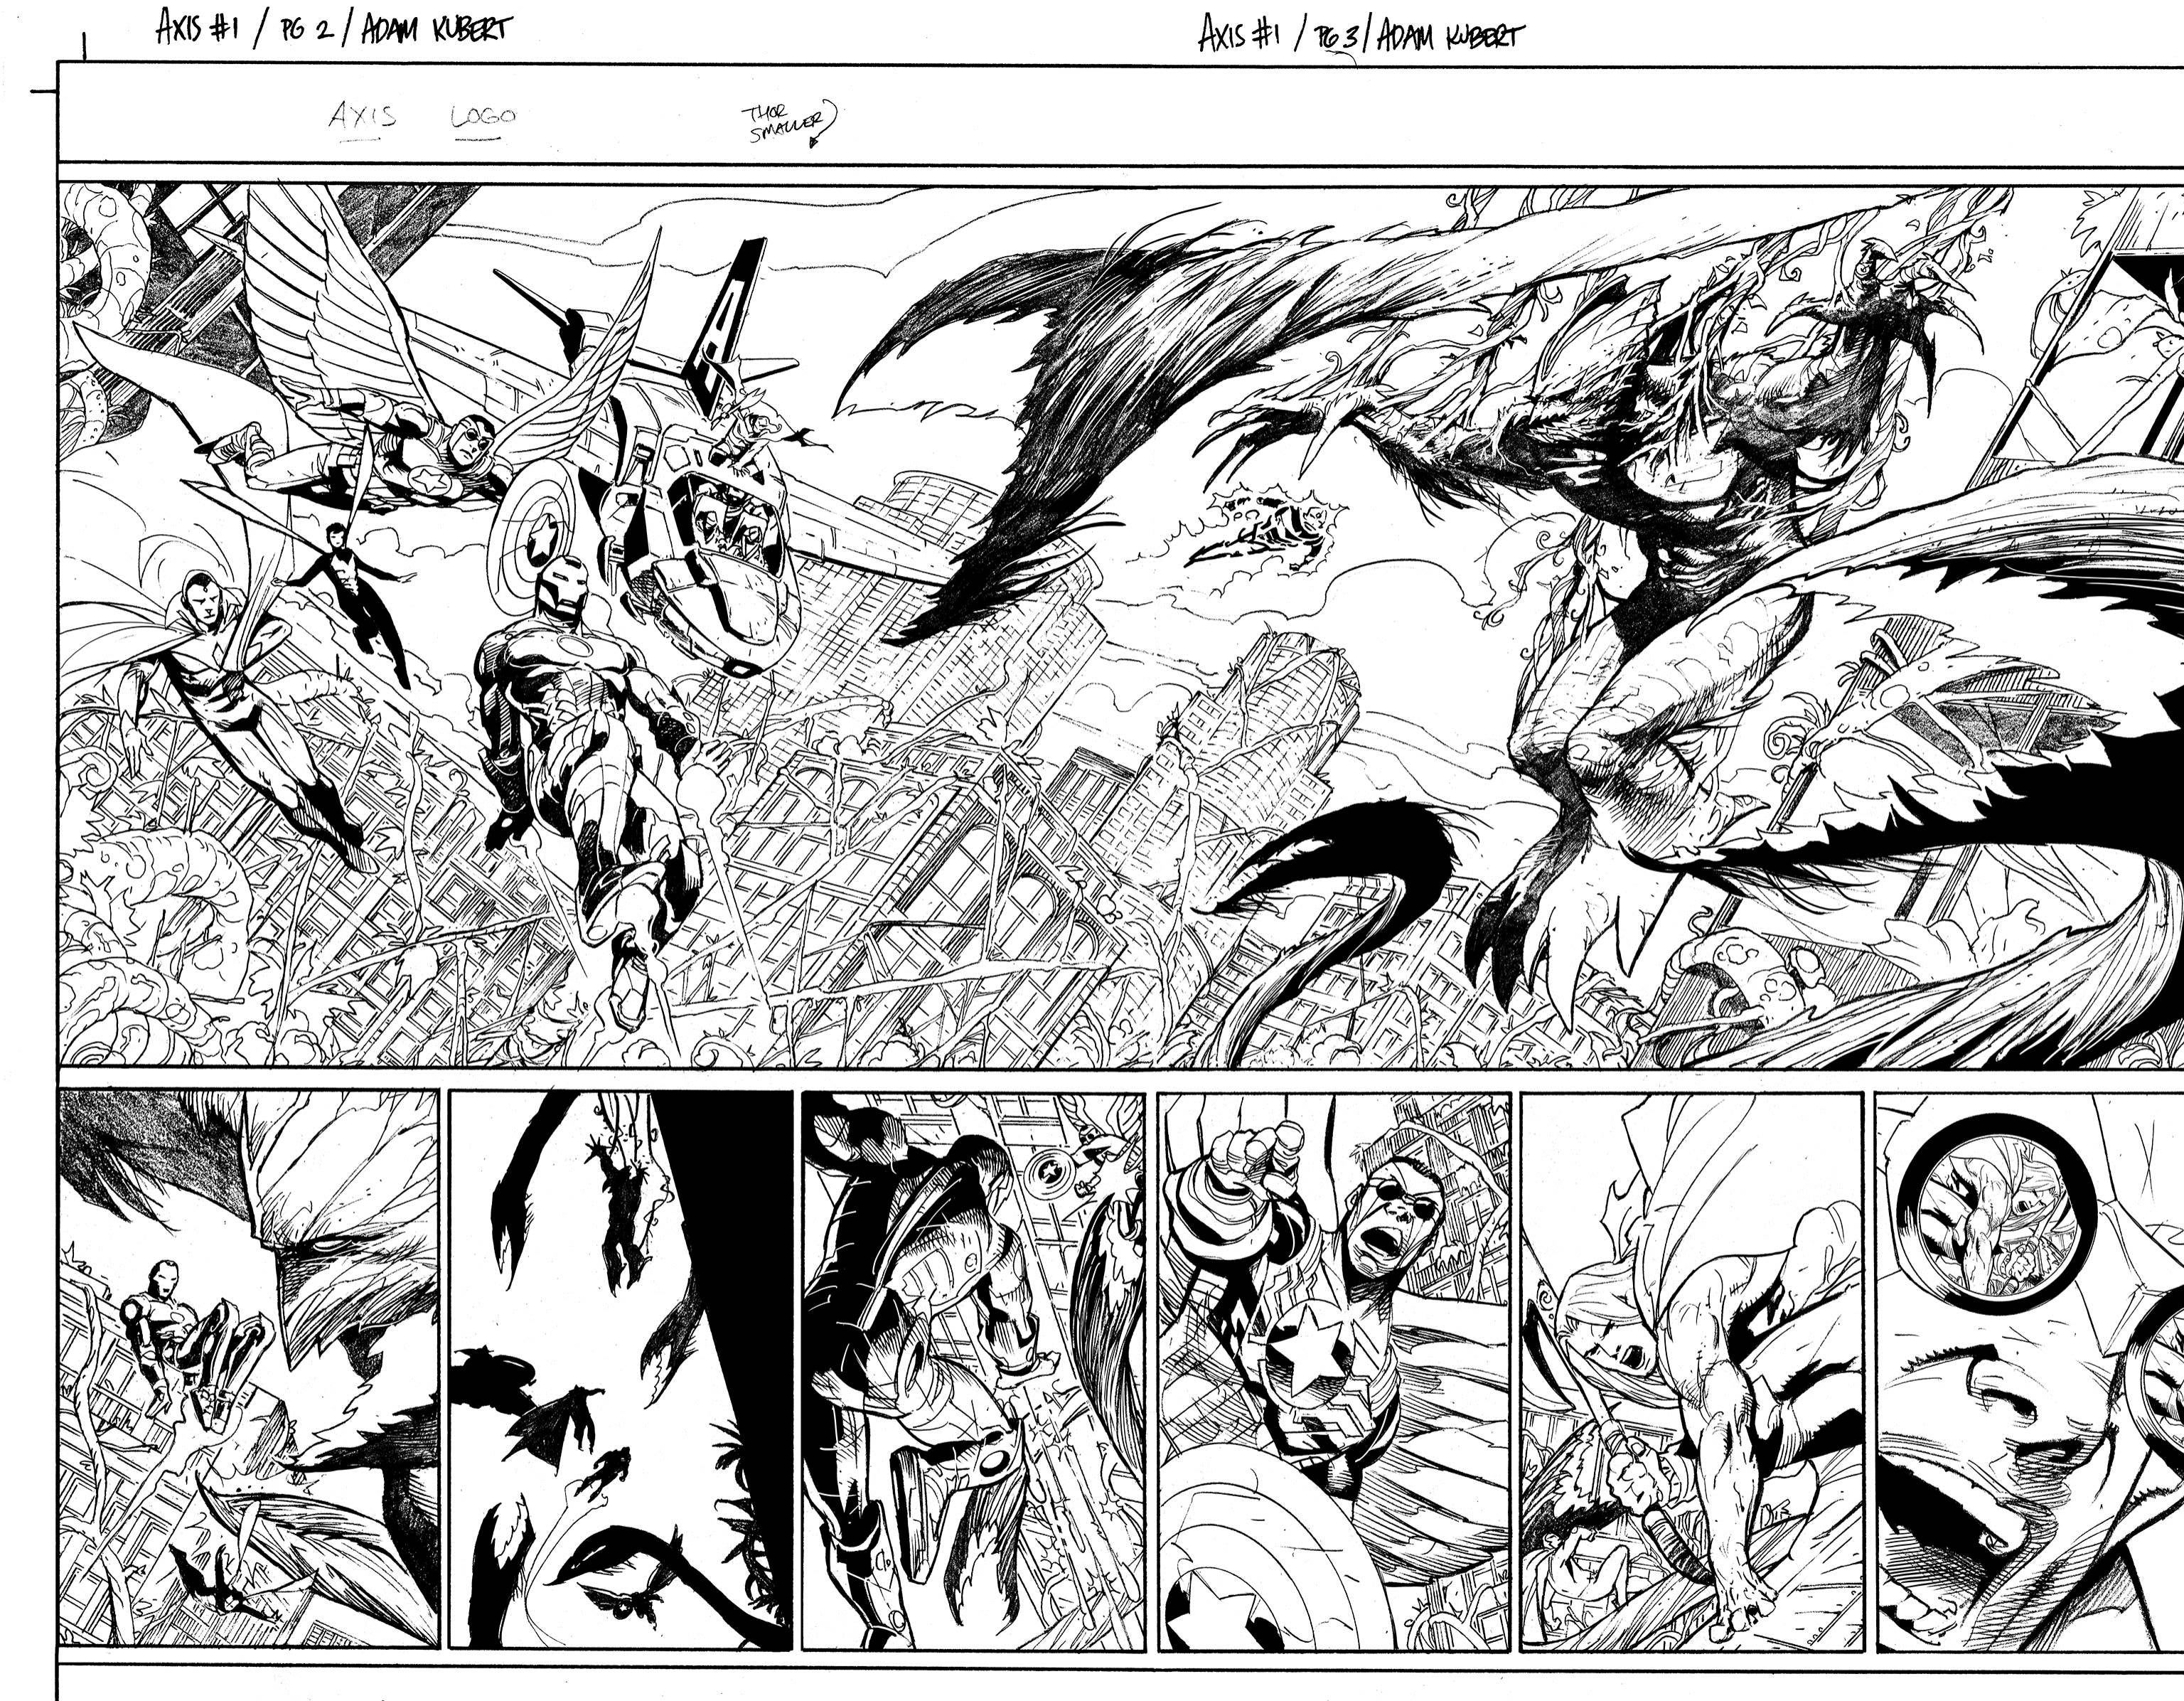 Comic Book Cover Black And White : Avengers men axis first look at interior art released